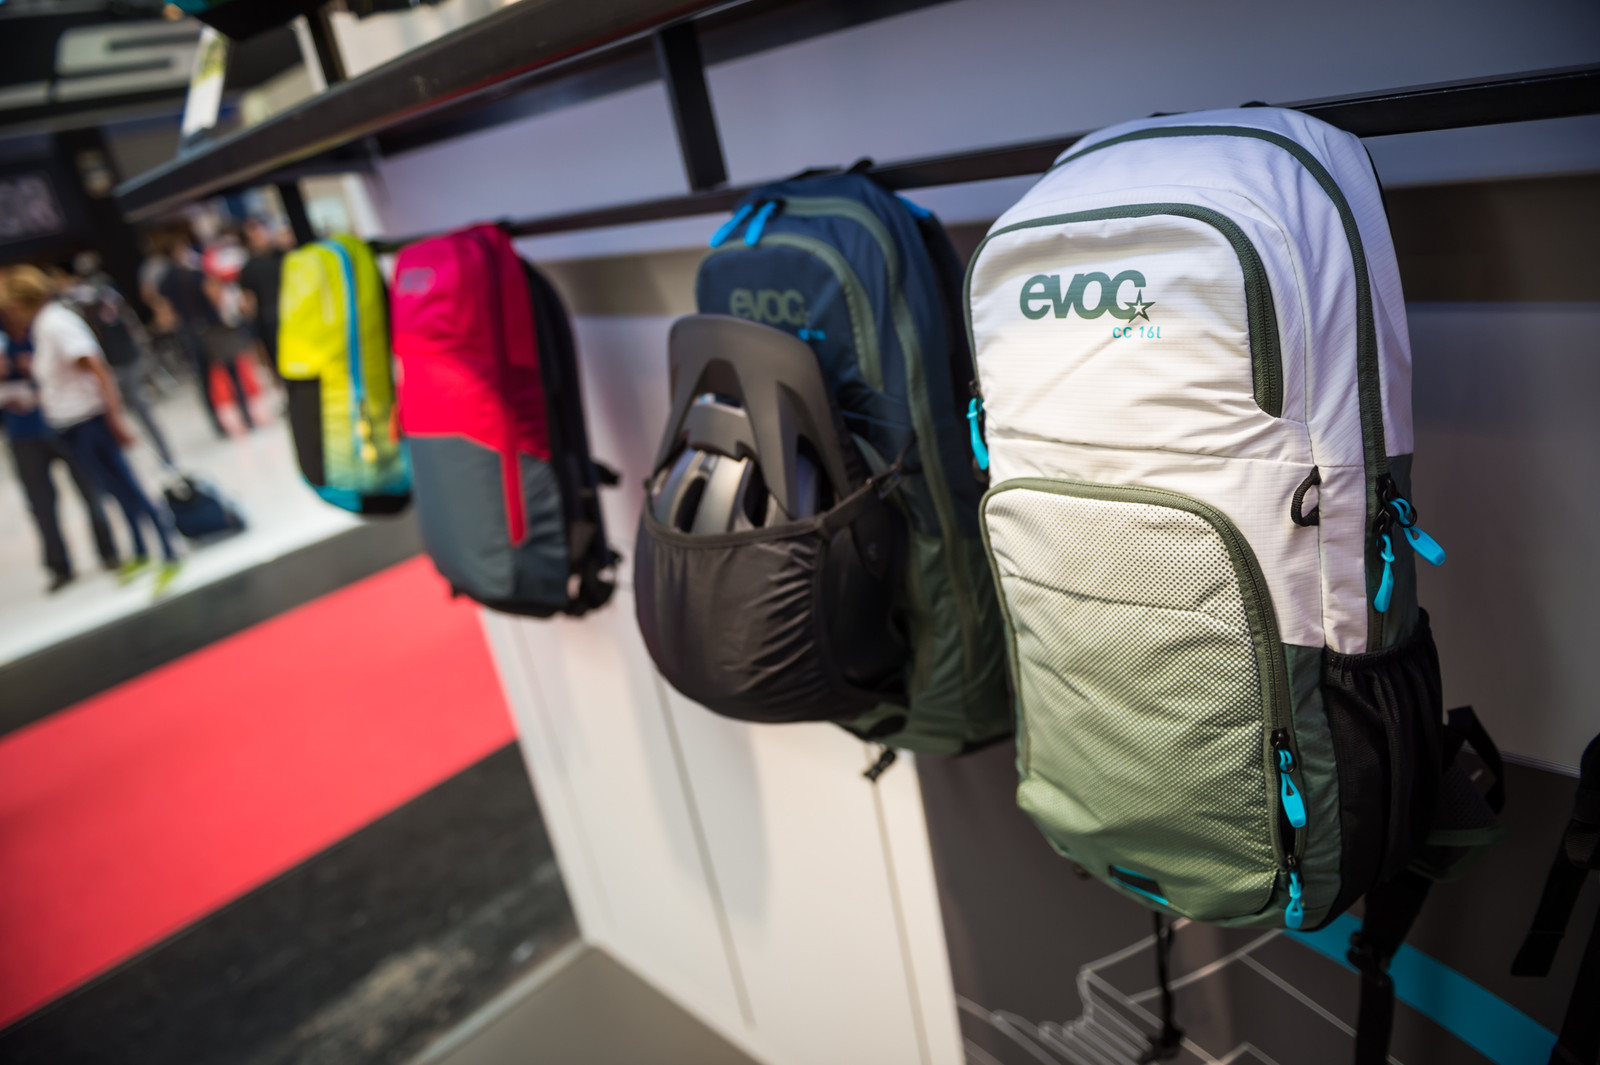 Evoc Climate Control Packs and 3L Hip Pack - EUROBIKE - 2017 Mountain Bike Apparel and Protective Gear - Mountain Biking Pictures - Vital MTB